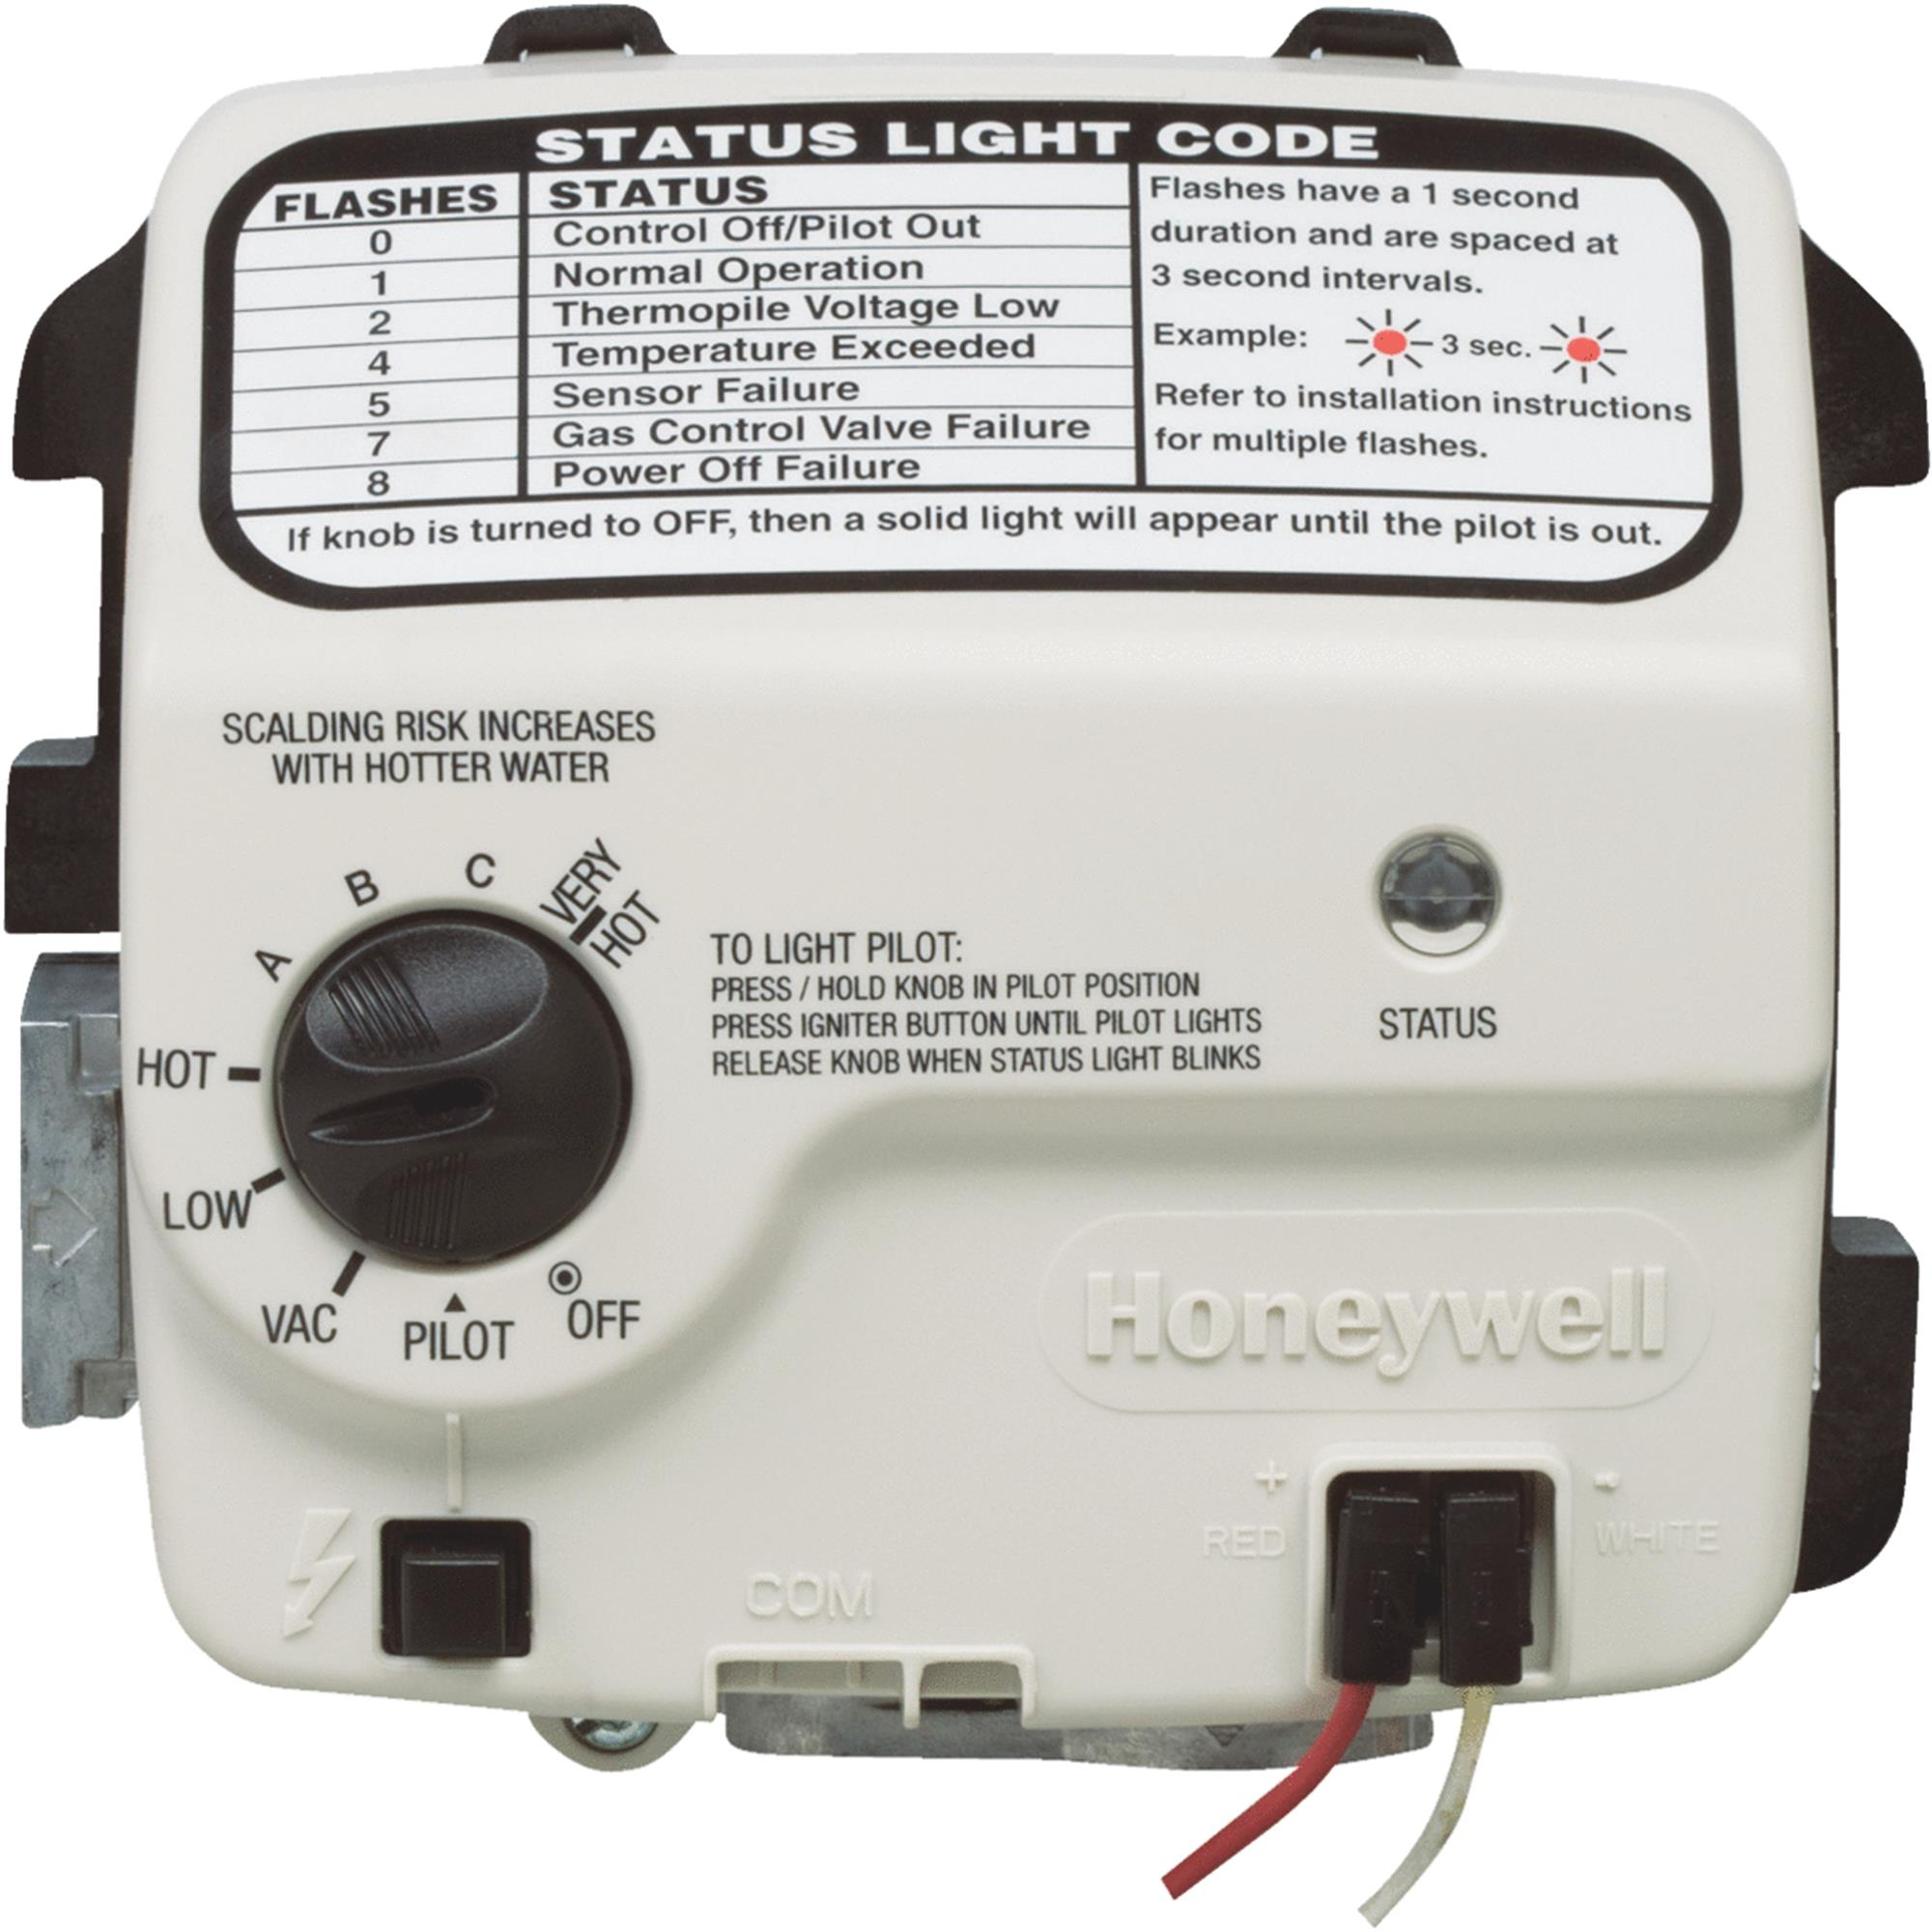 Bradford White Tankless Water Heater Manual Electric Installation Instructions